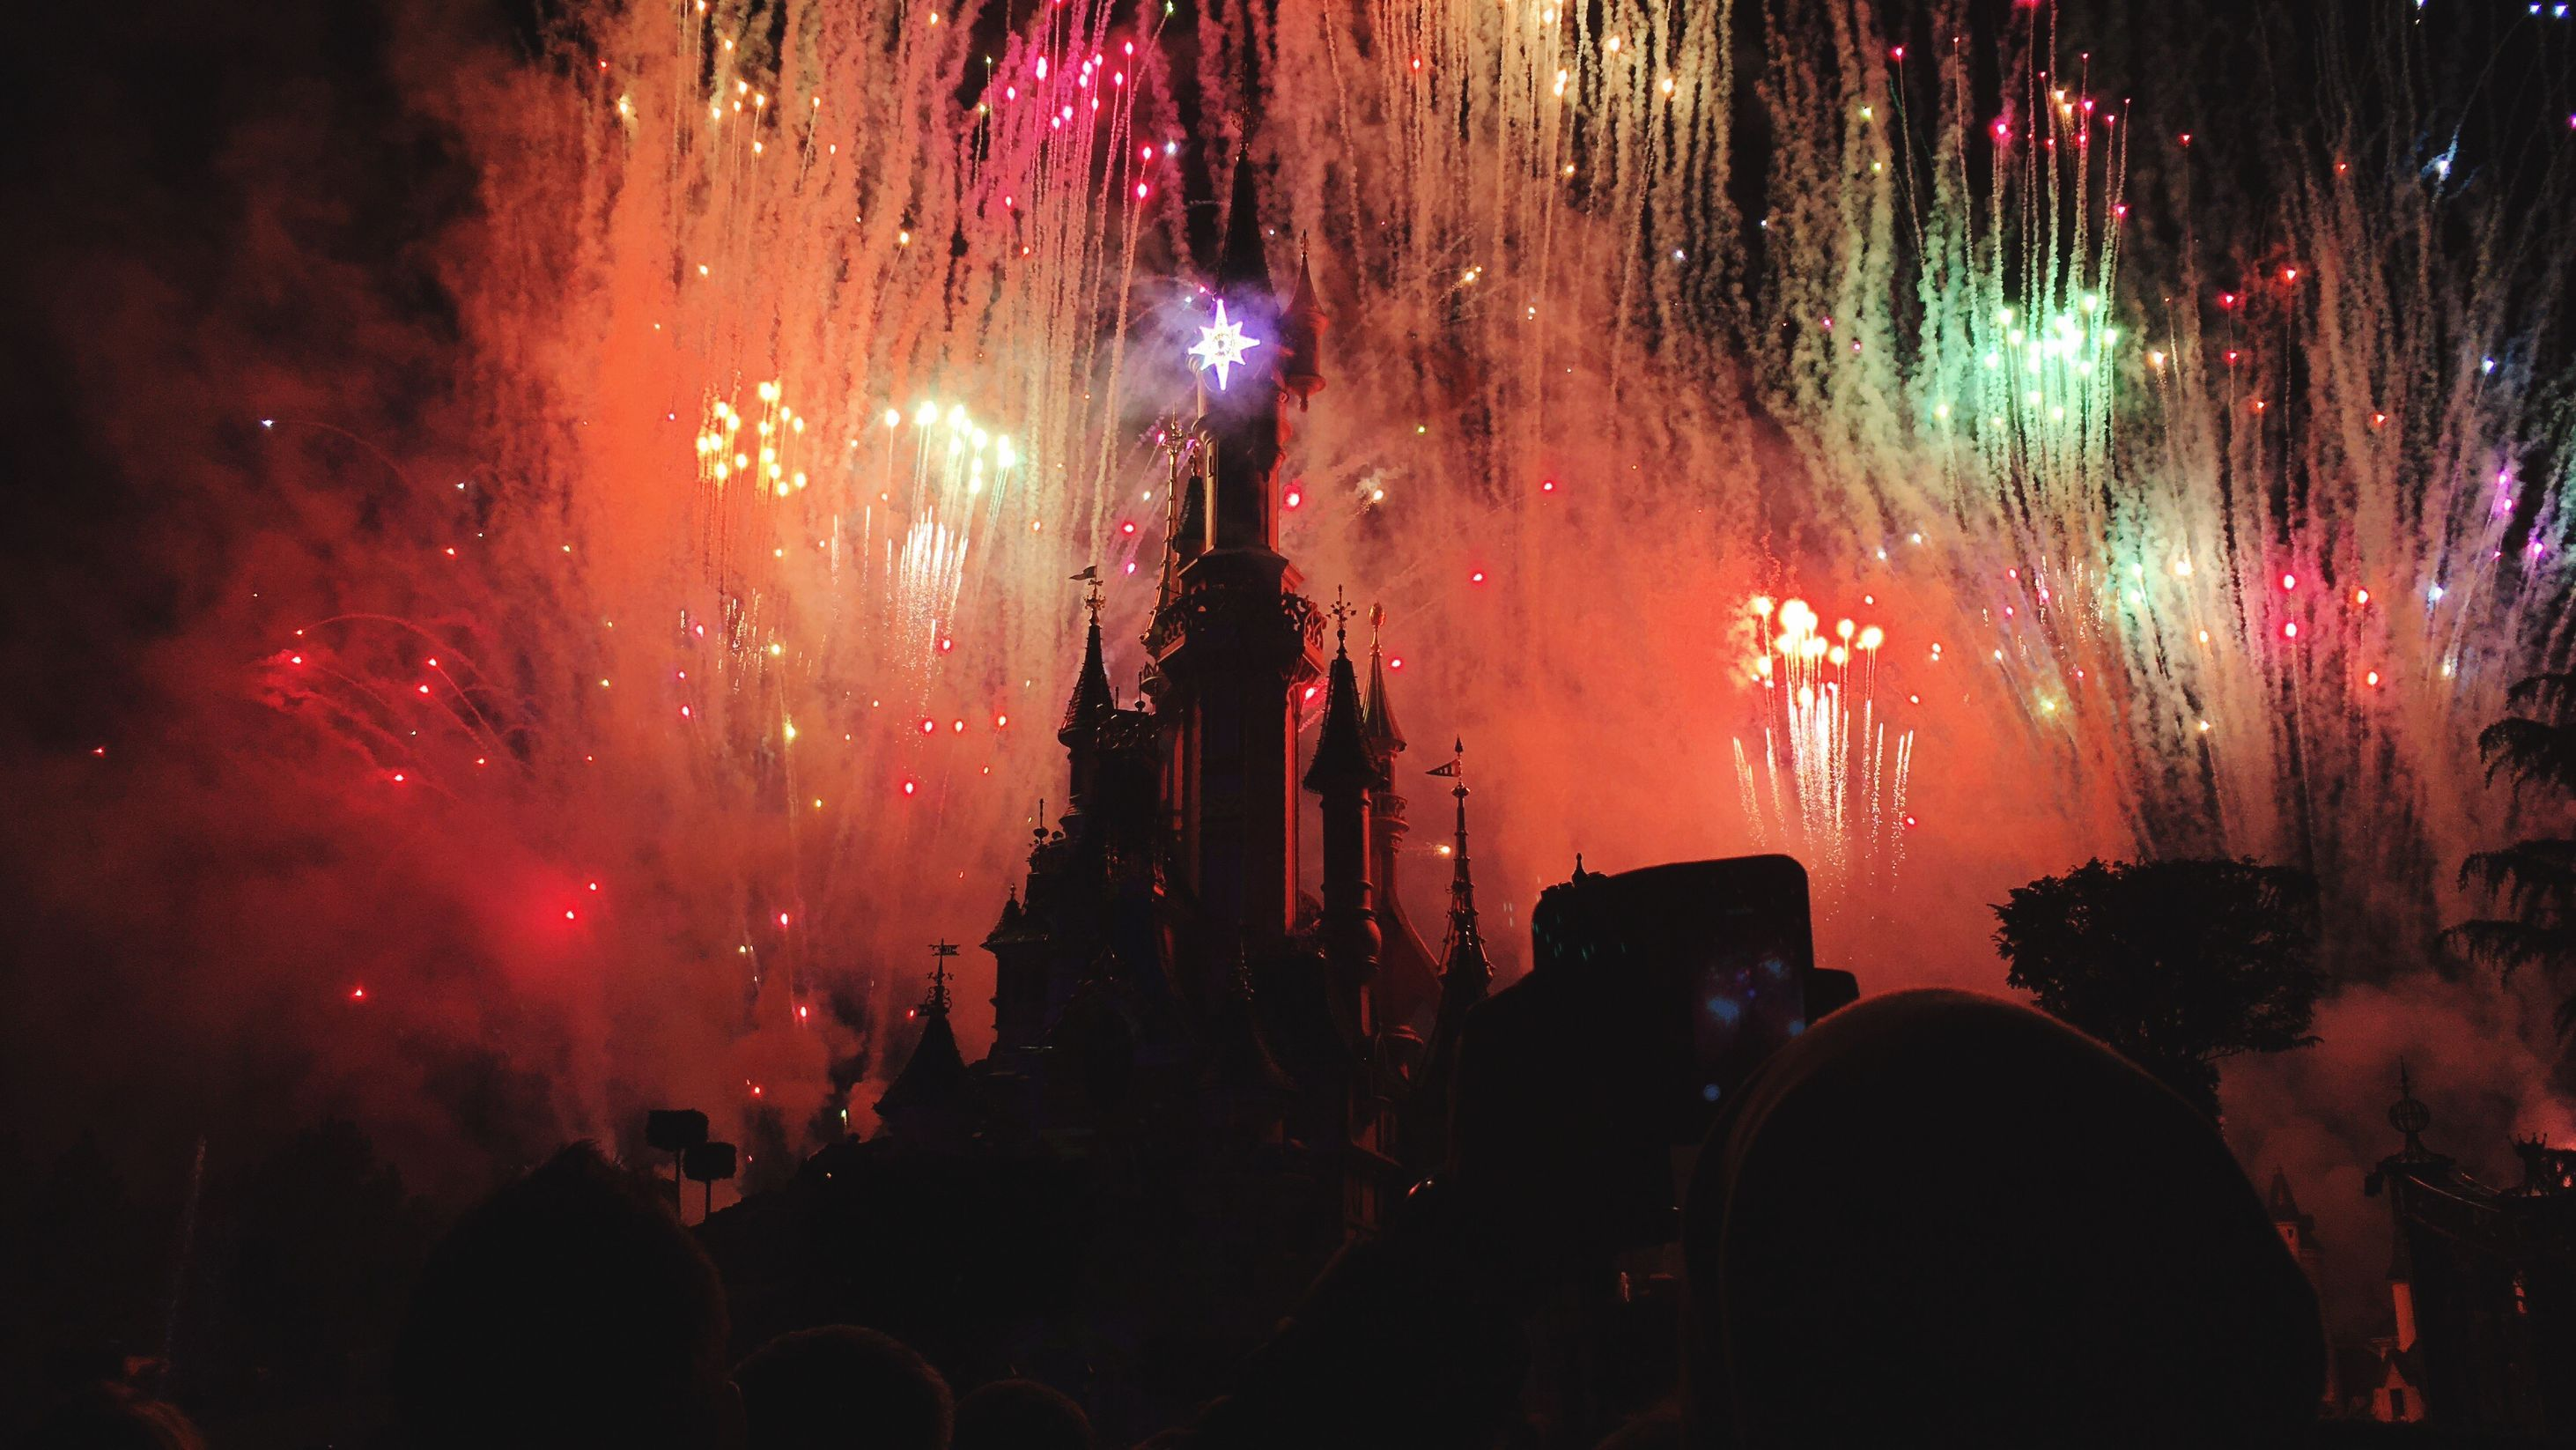 What to pack for Disneyland - Skyscanner 2017-11-19 08:00